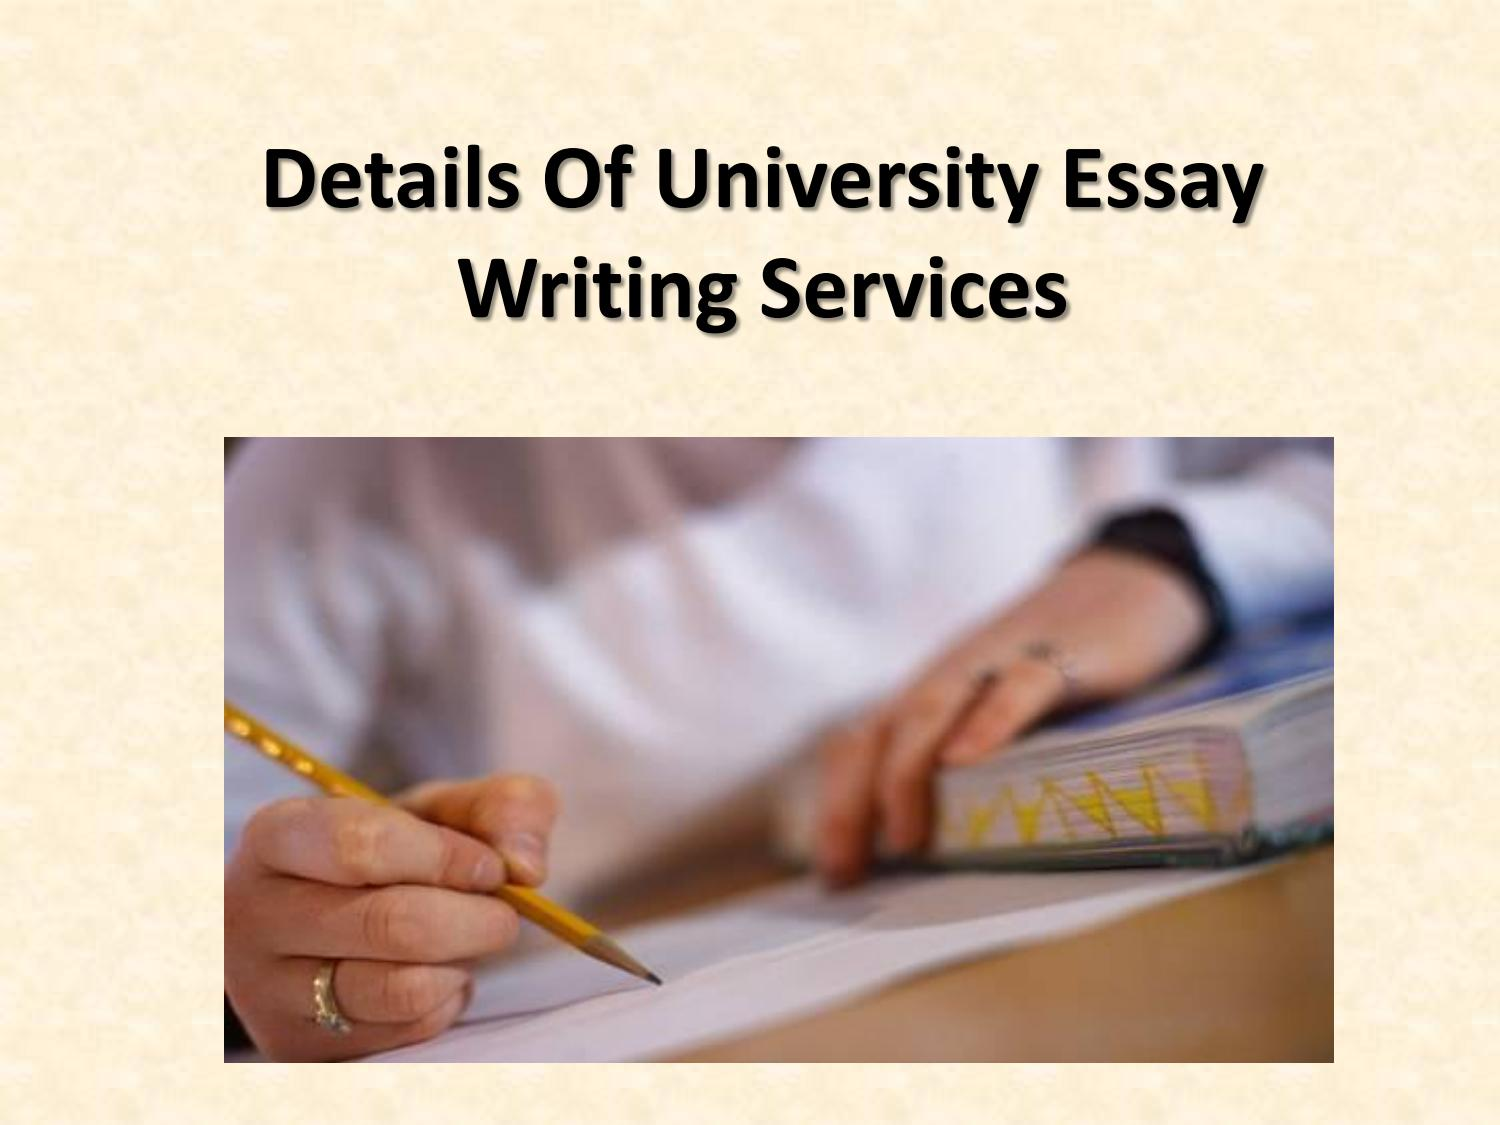 essay writing powered by blogger Essay was really helpful and entertaining too reply delete unknown 18 april 2017 at 08:34 i like this essay  reply delete  narrative essay writing sample i february (1) january (12) picture window theme powered by blogger.